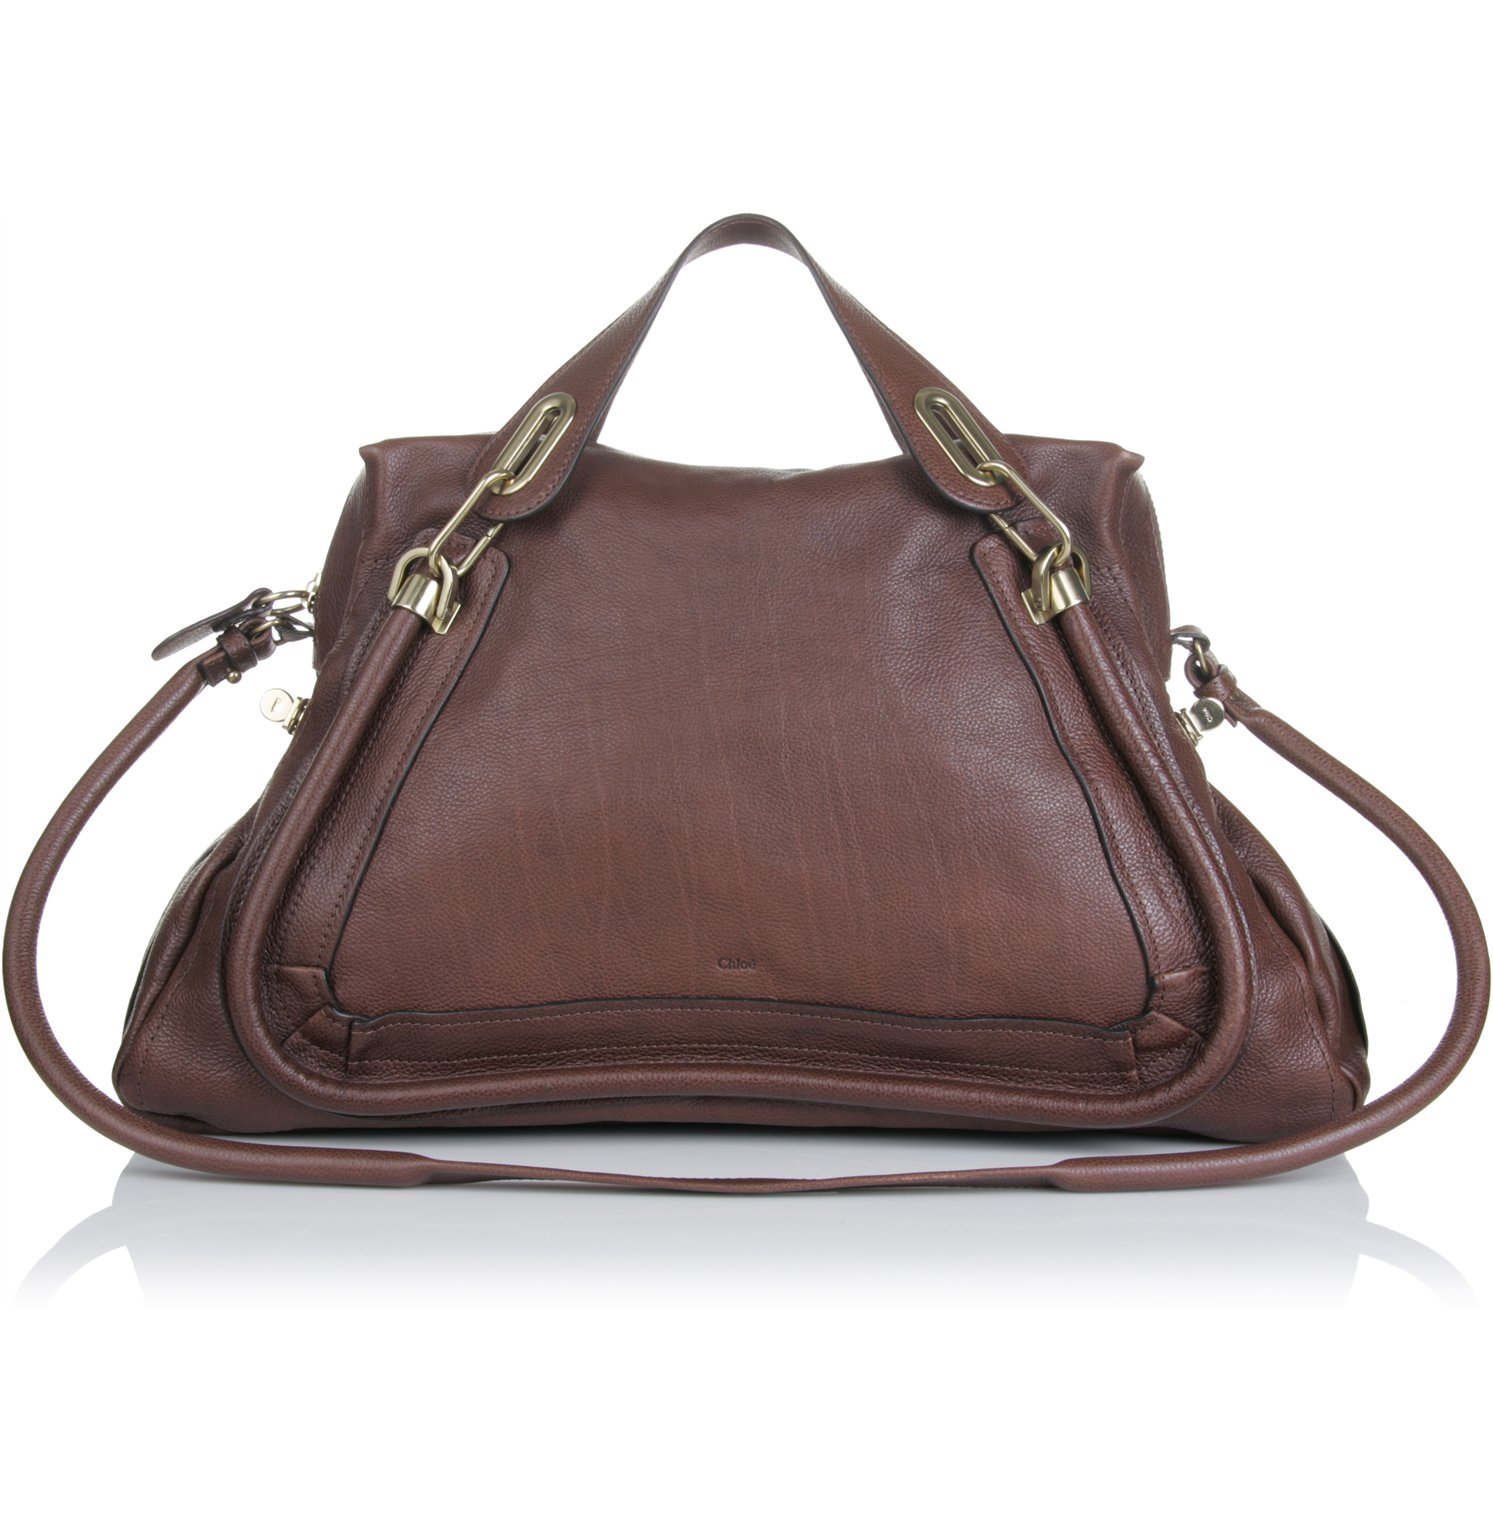 Chlo¨¦ Large Paraty Bag in Brown (chocolate) | Lyst